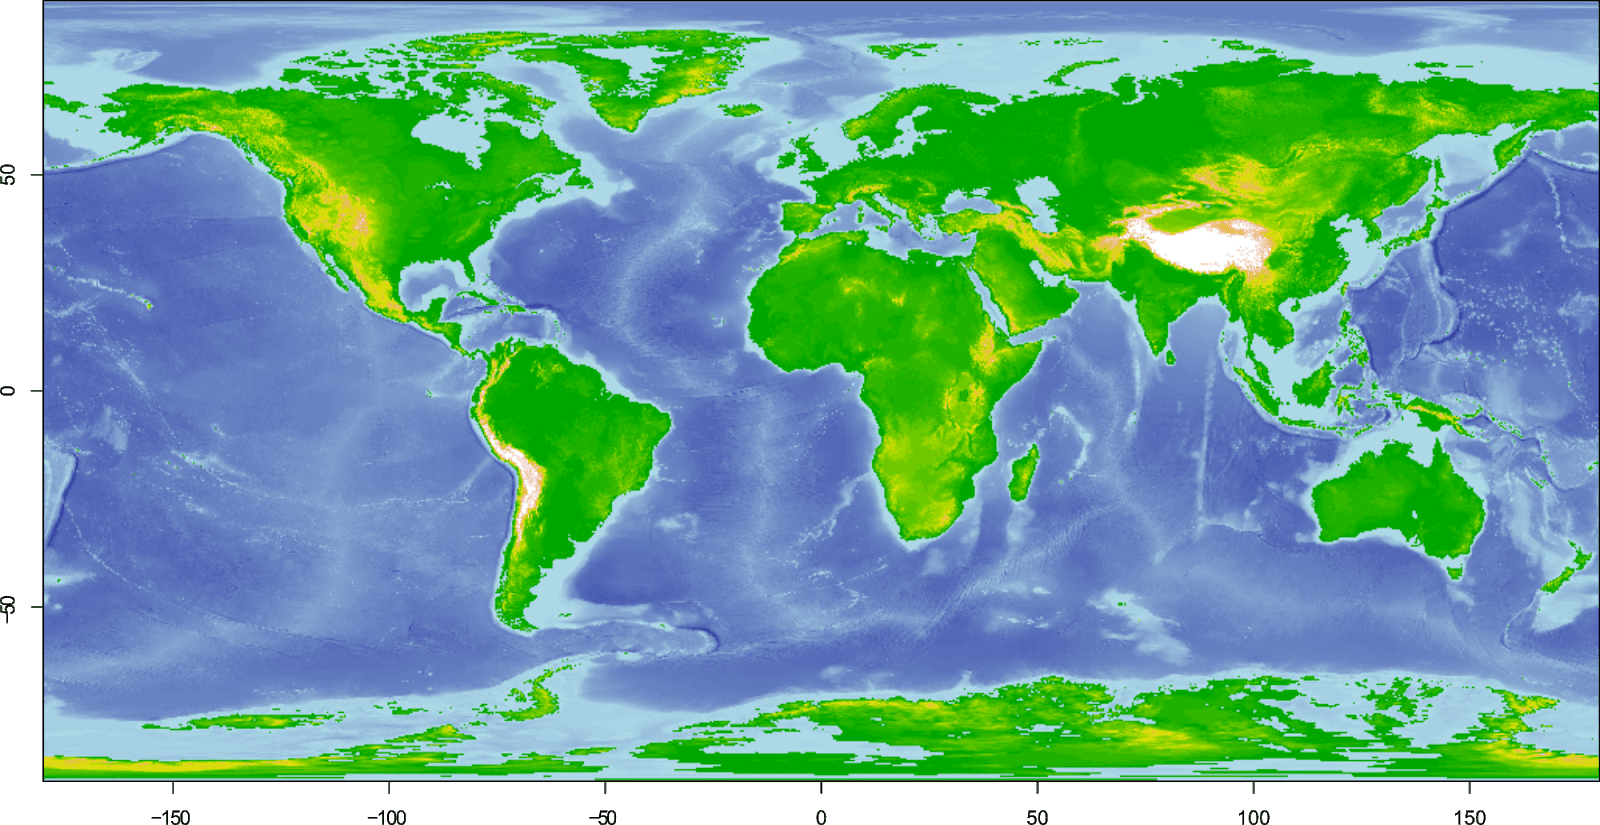 Benjamin Bell: Blog: Bathymetric maps in R: Getting and